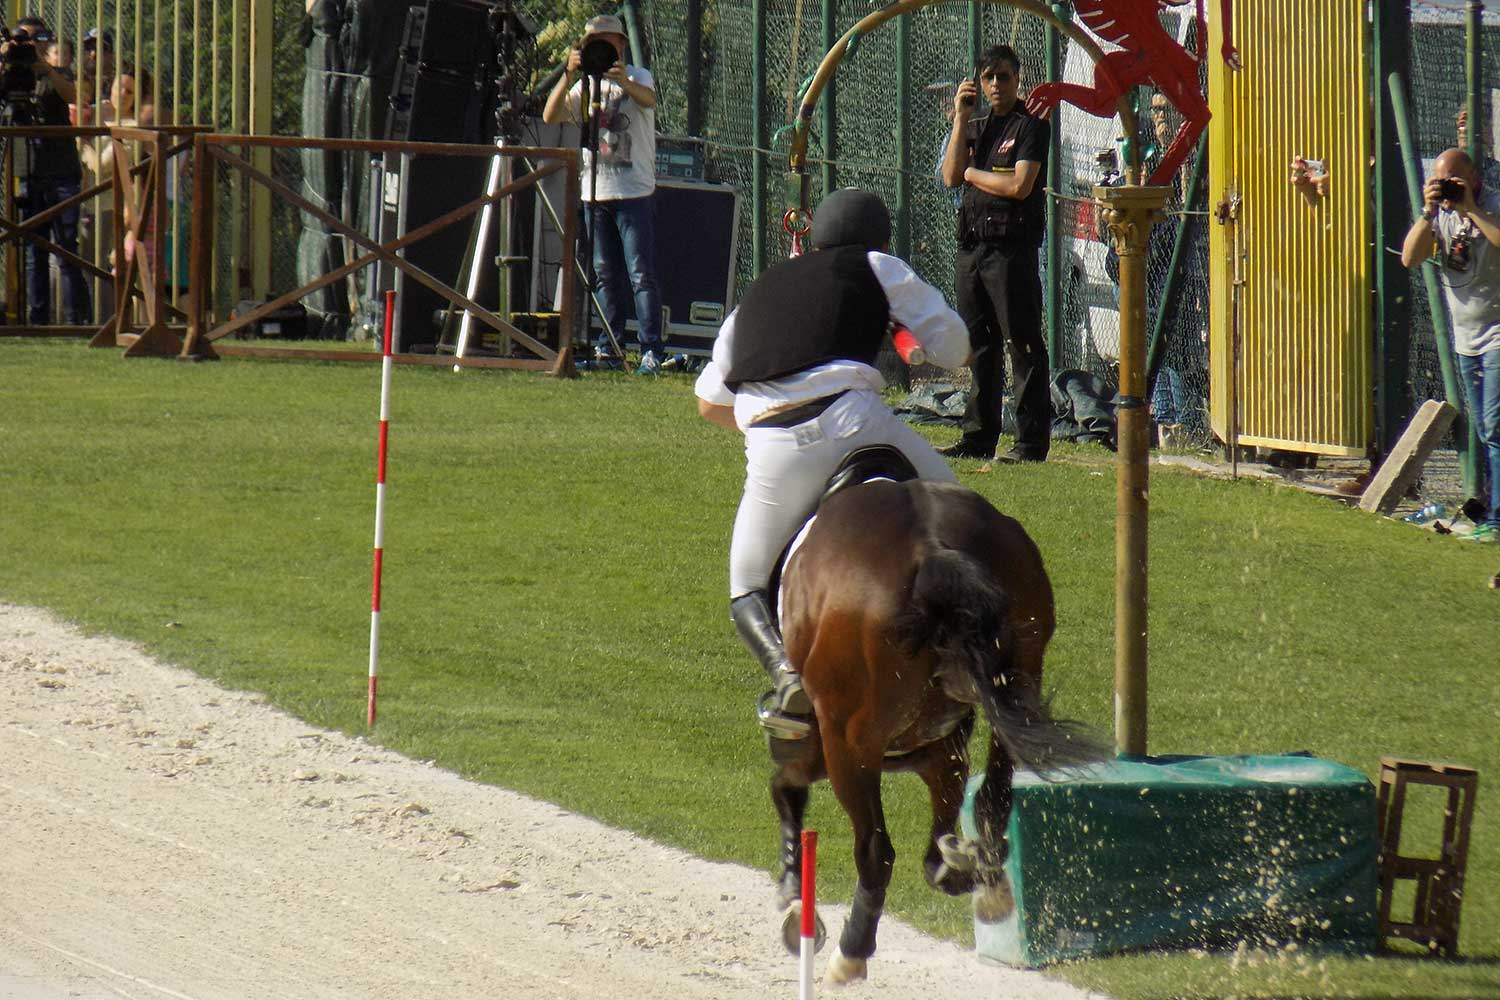 Cavaliere corsa all'anello